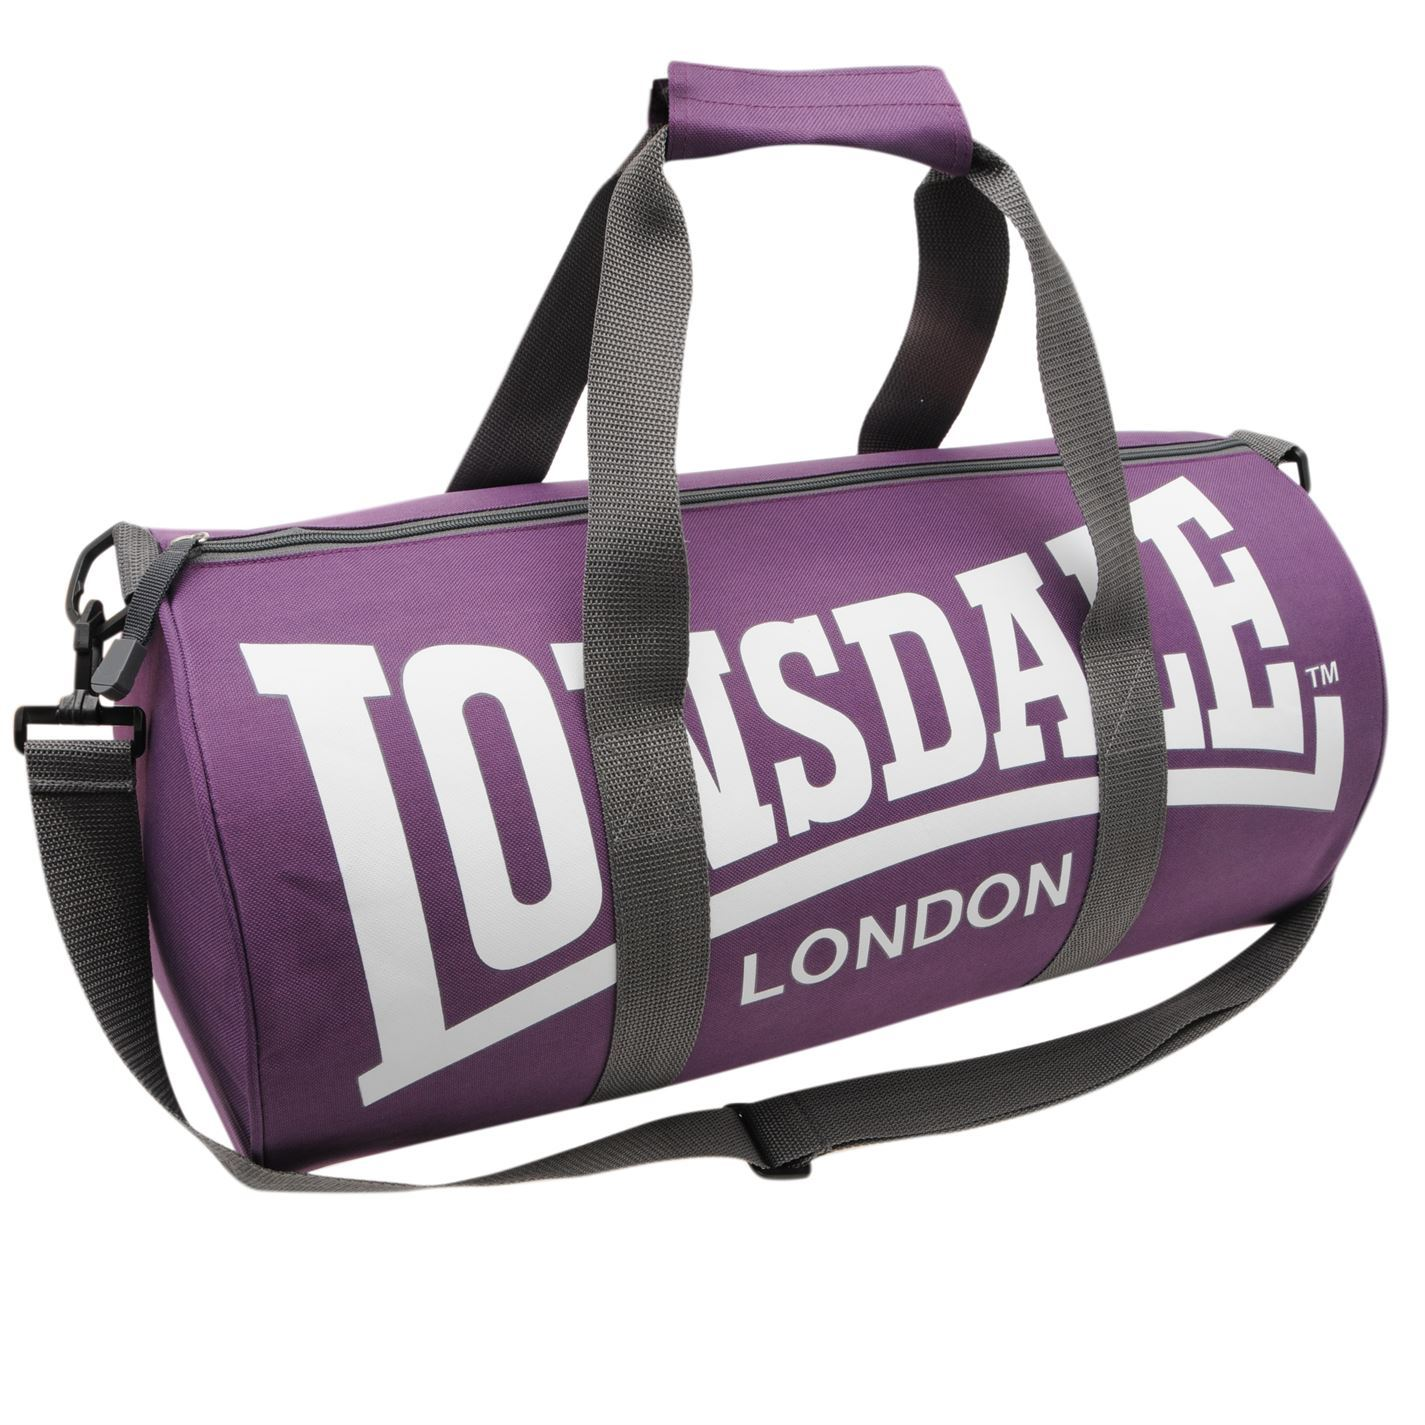 Details about Lonsdale Barrel Bag Purple Grey Sports Kit Holdall Carryall  Gymbag 62a17a2209591